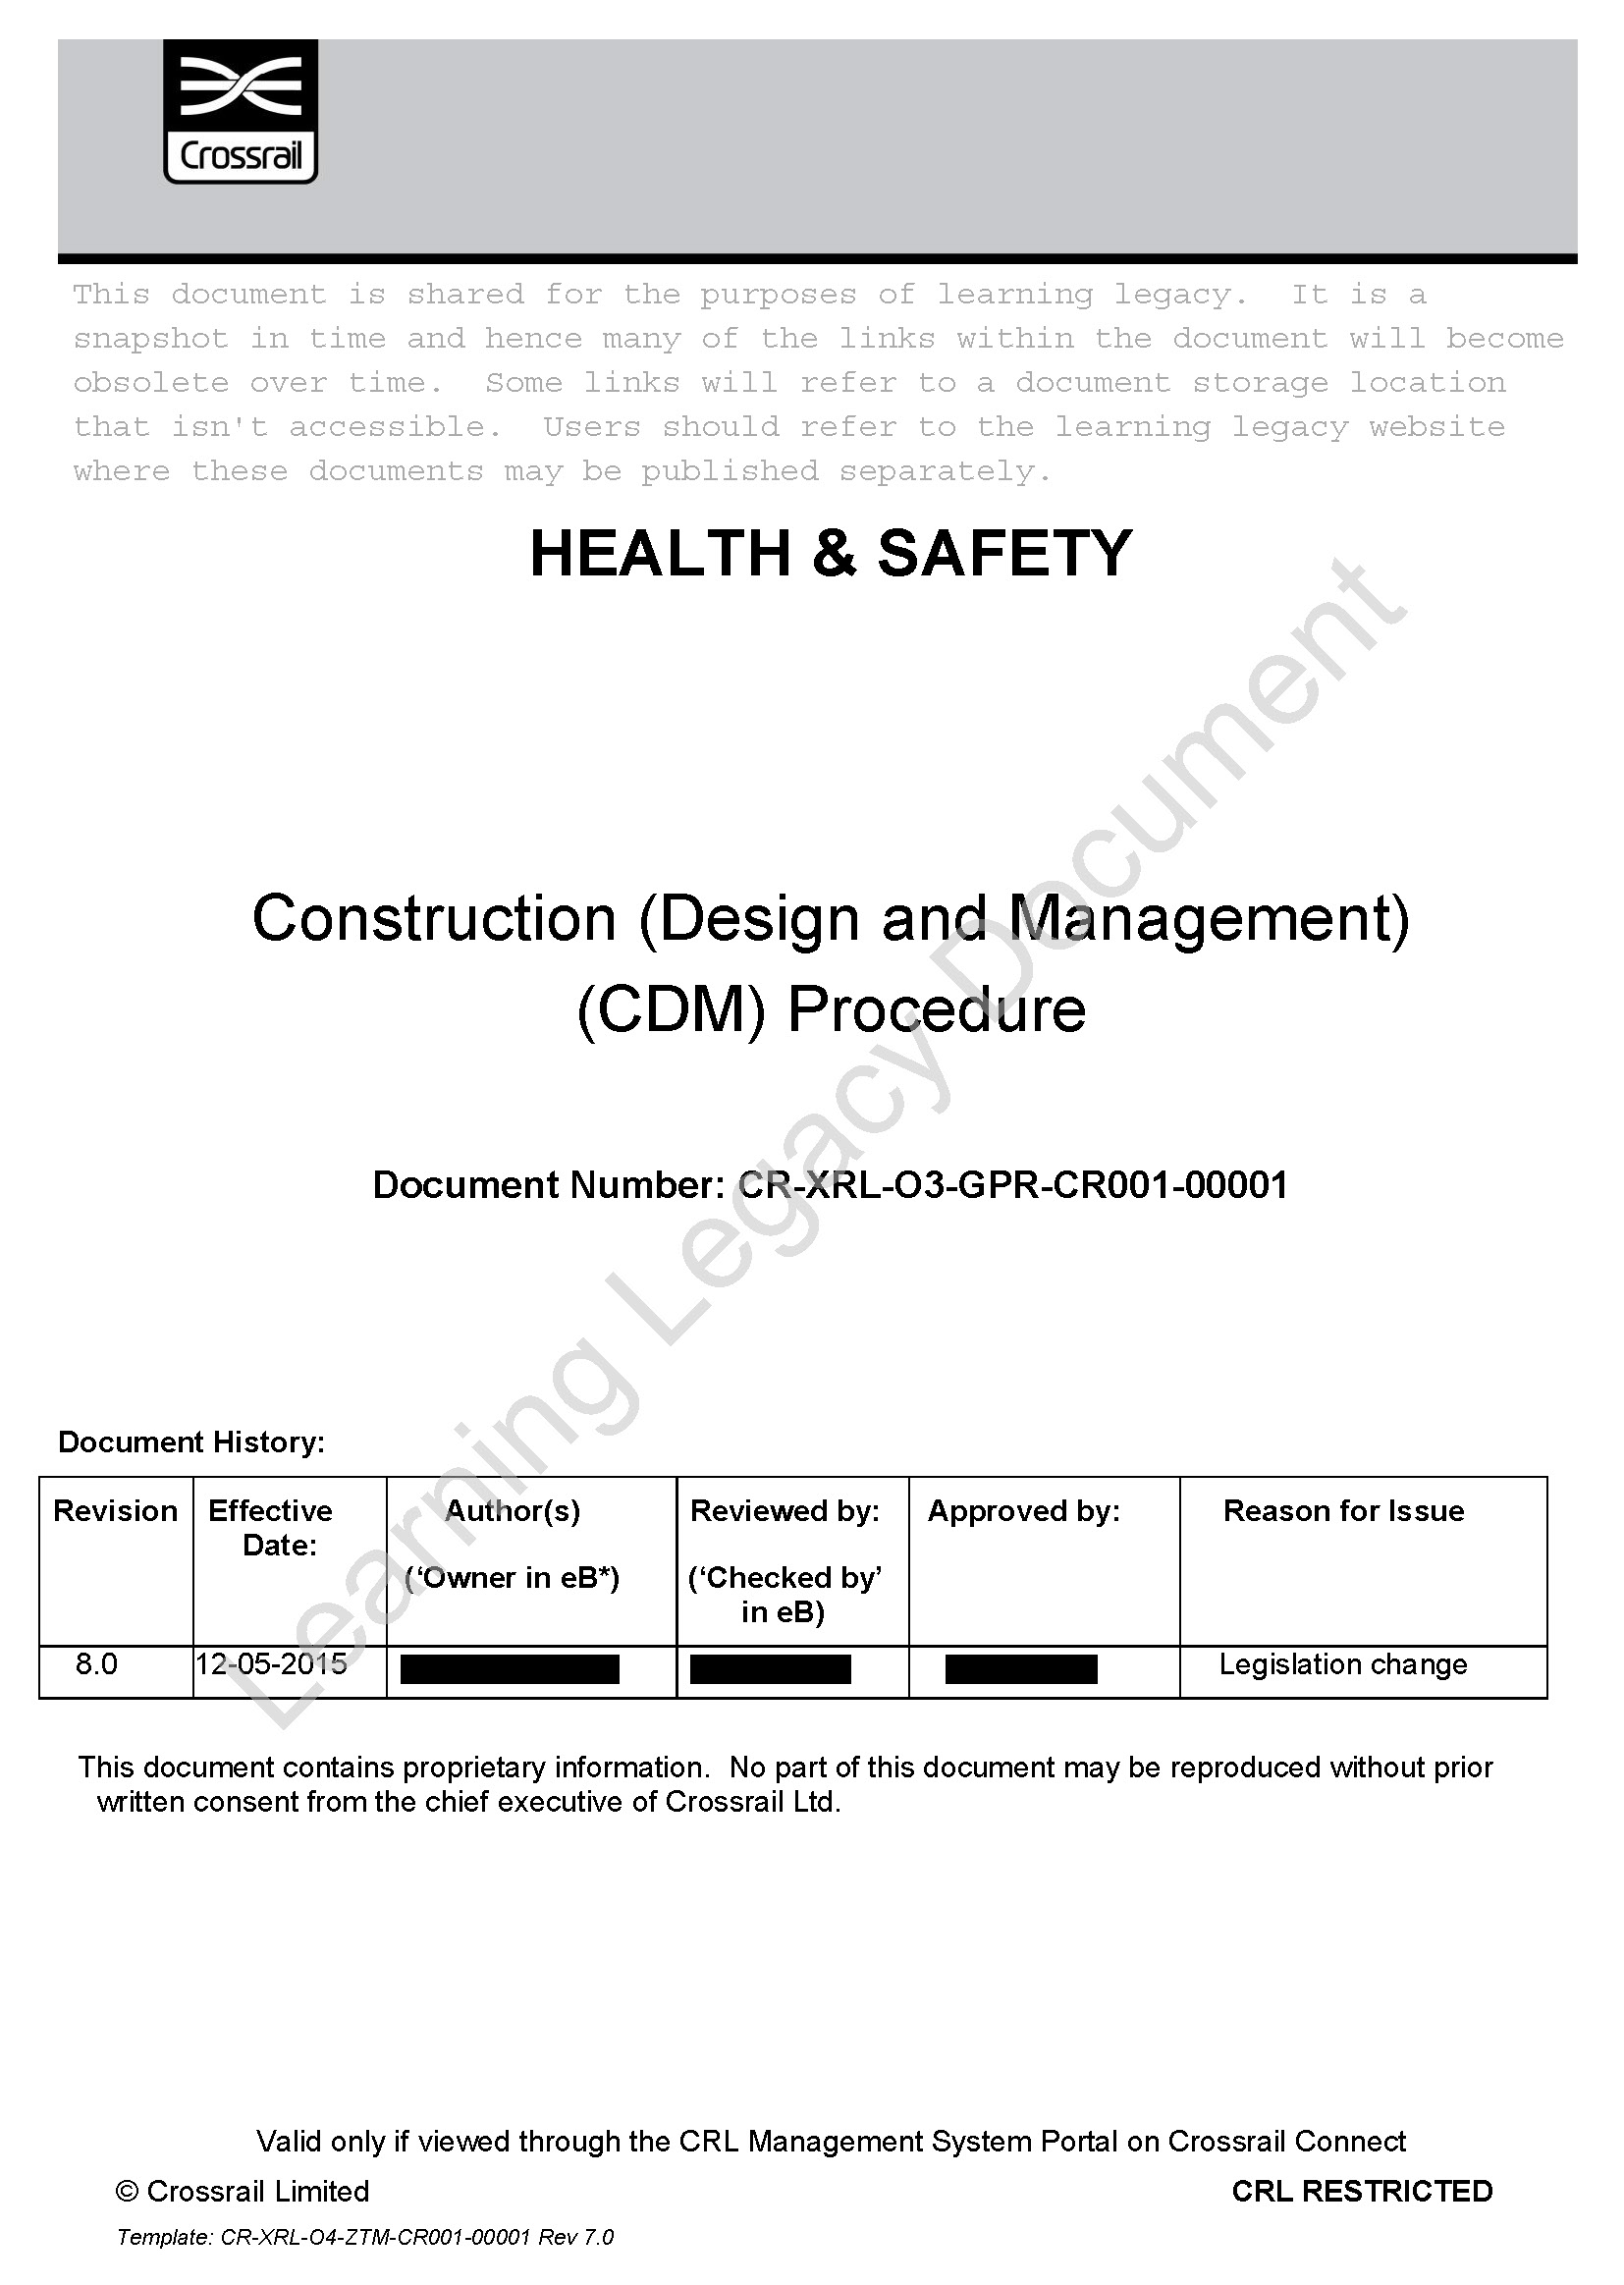 Health and Safety Assurance - Crossrail Learning Legacy